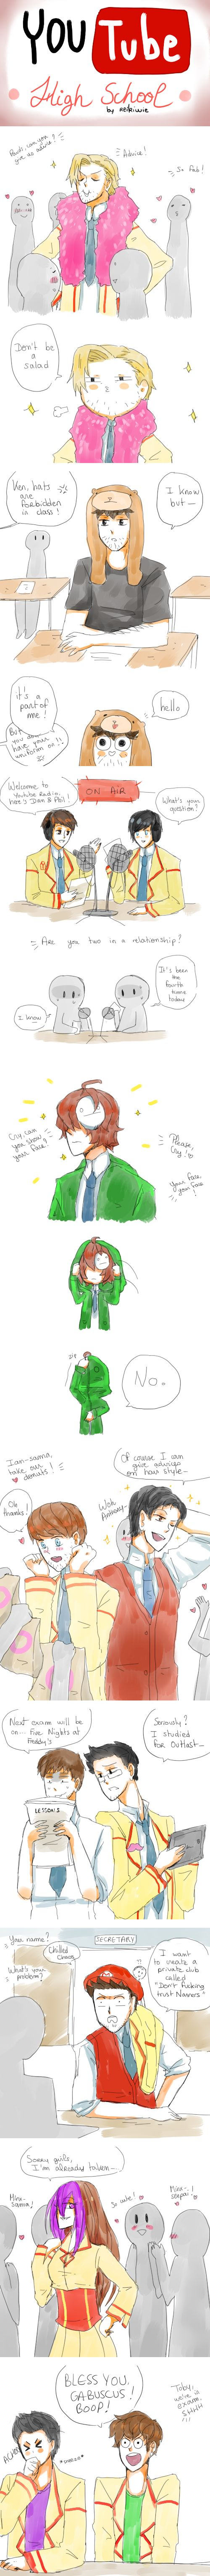 Youtube High School by Reikiwie.deviantart.com on @DeviantArt I died at dan and phil